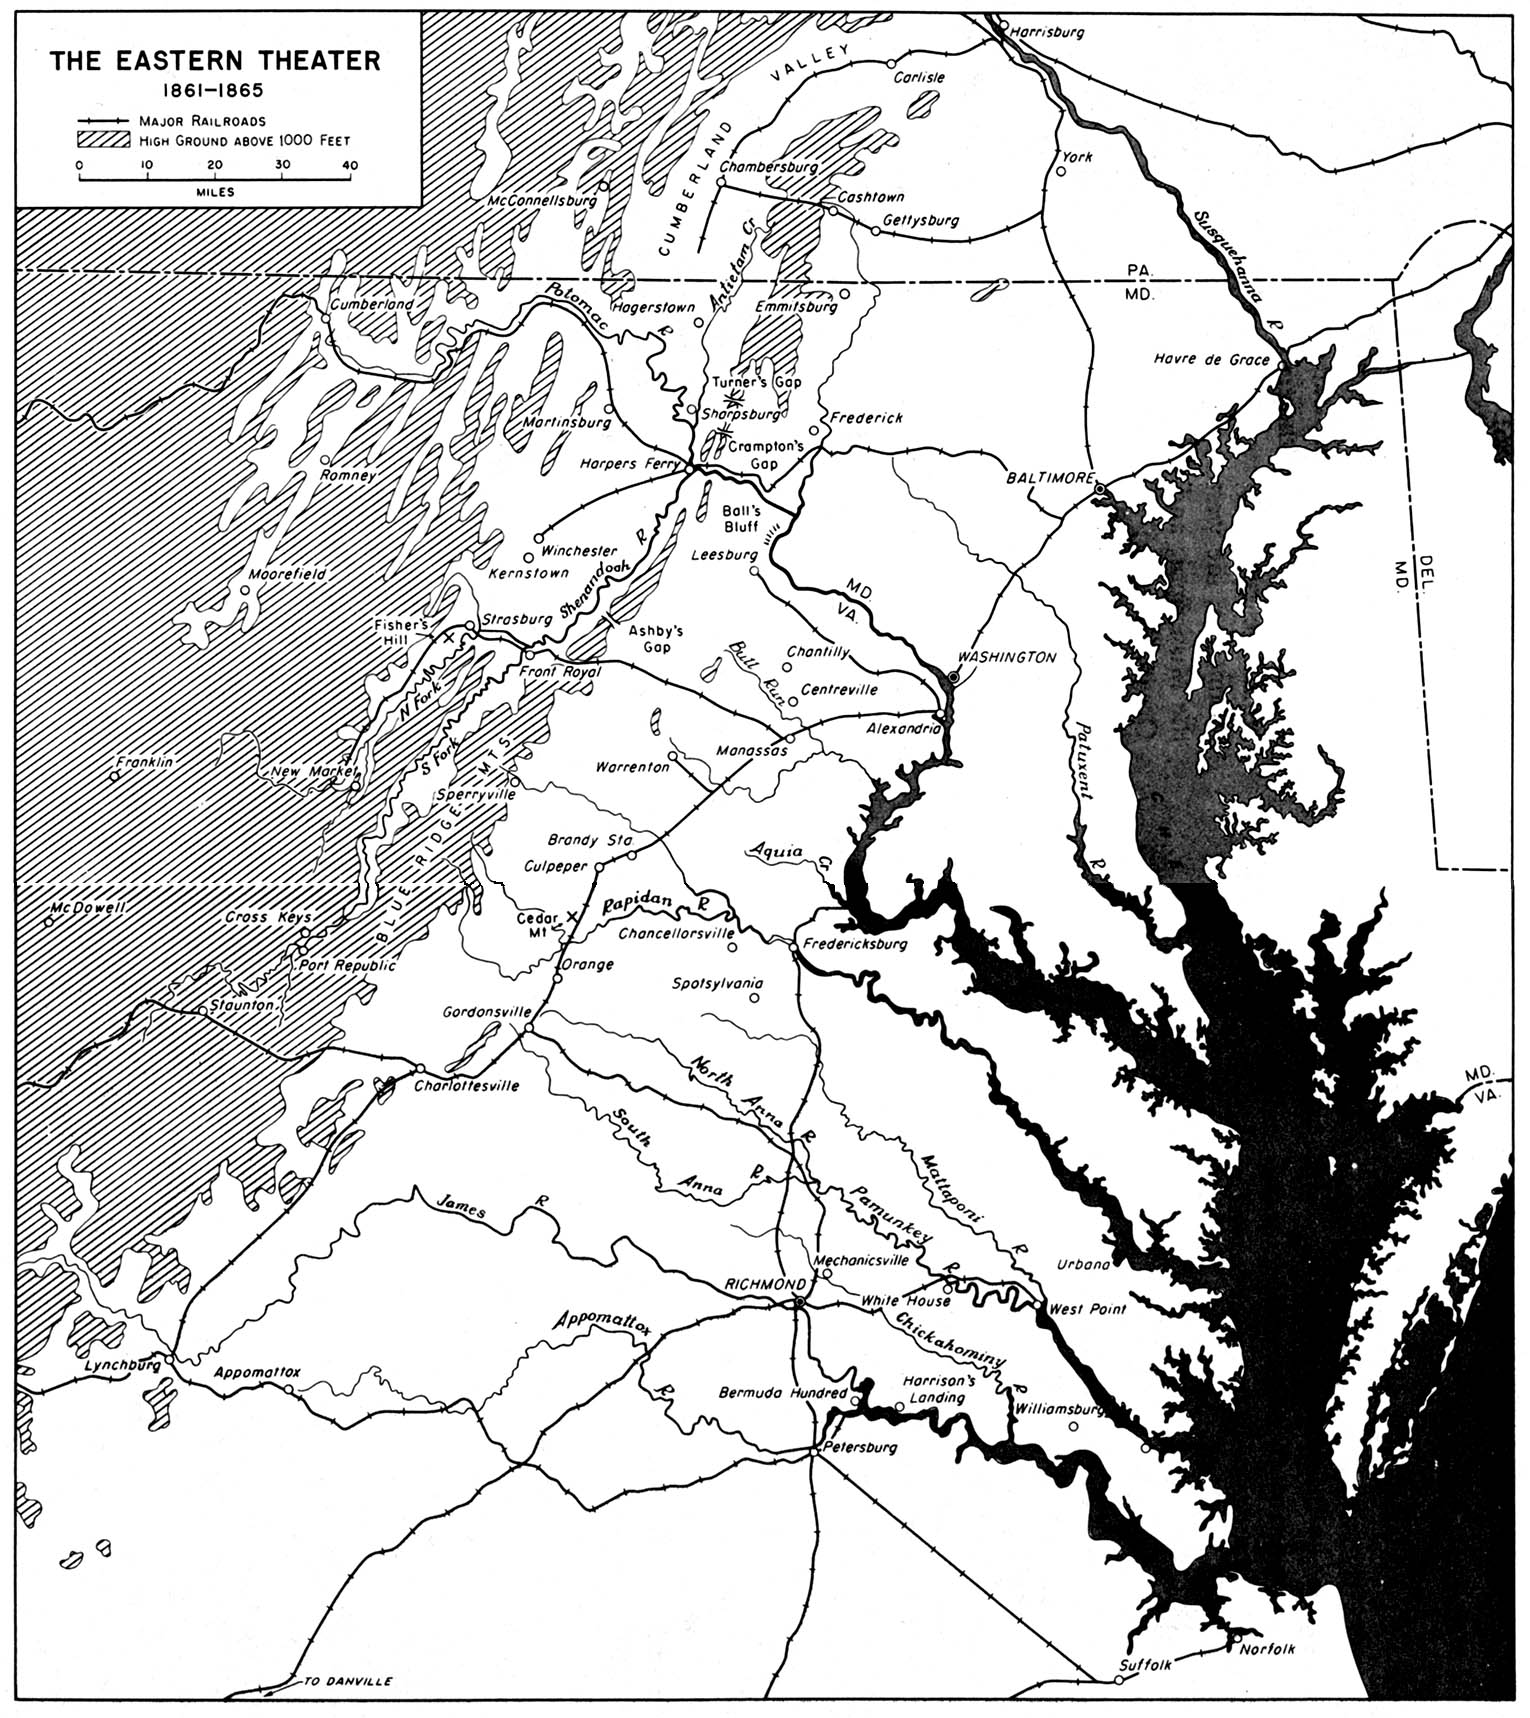 Map of the Eastern Theater, American Civil War  1861 - 1865